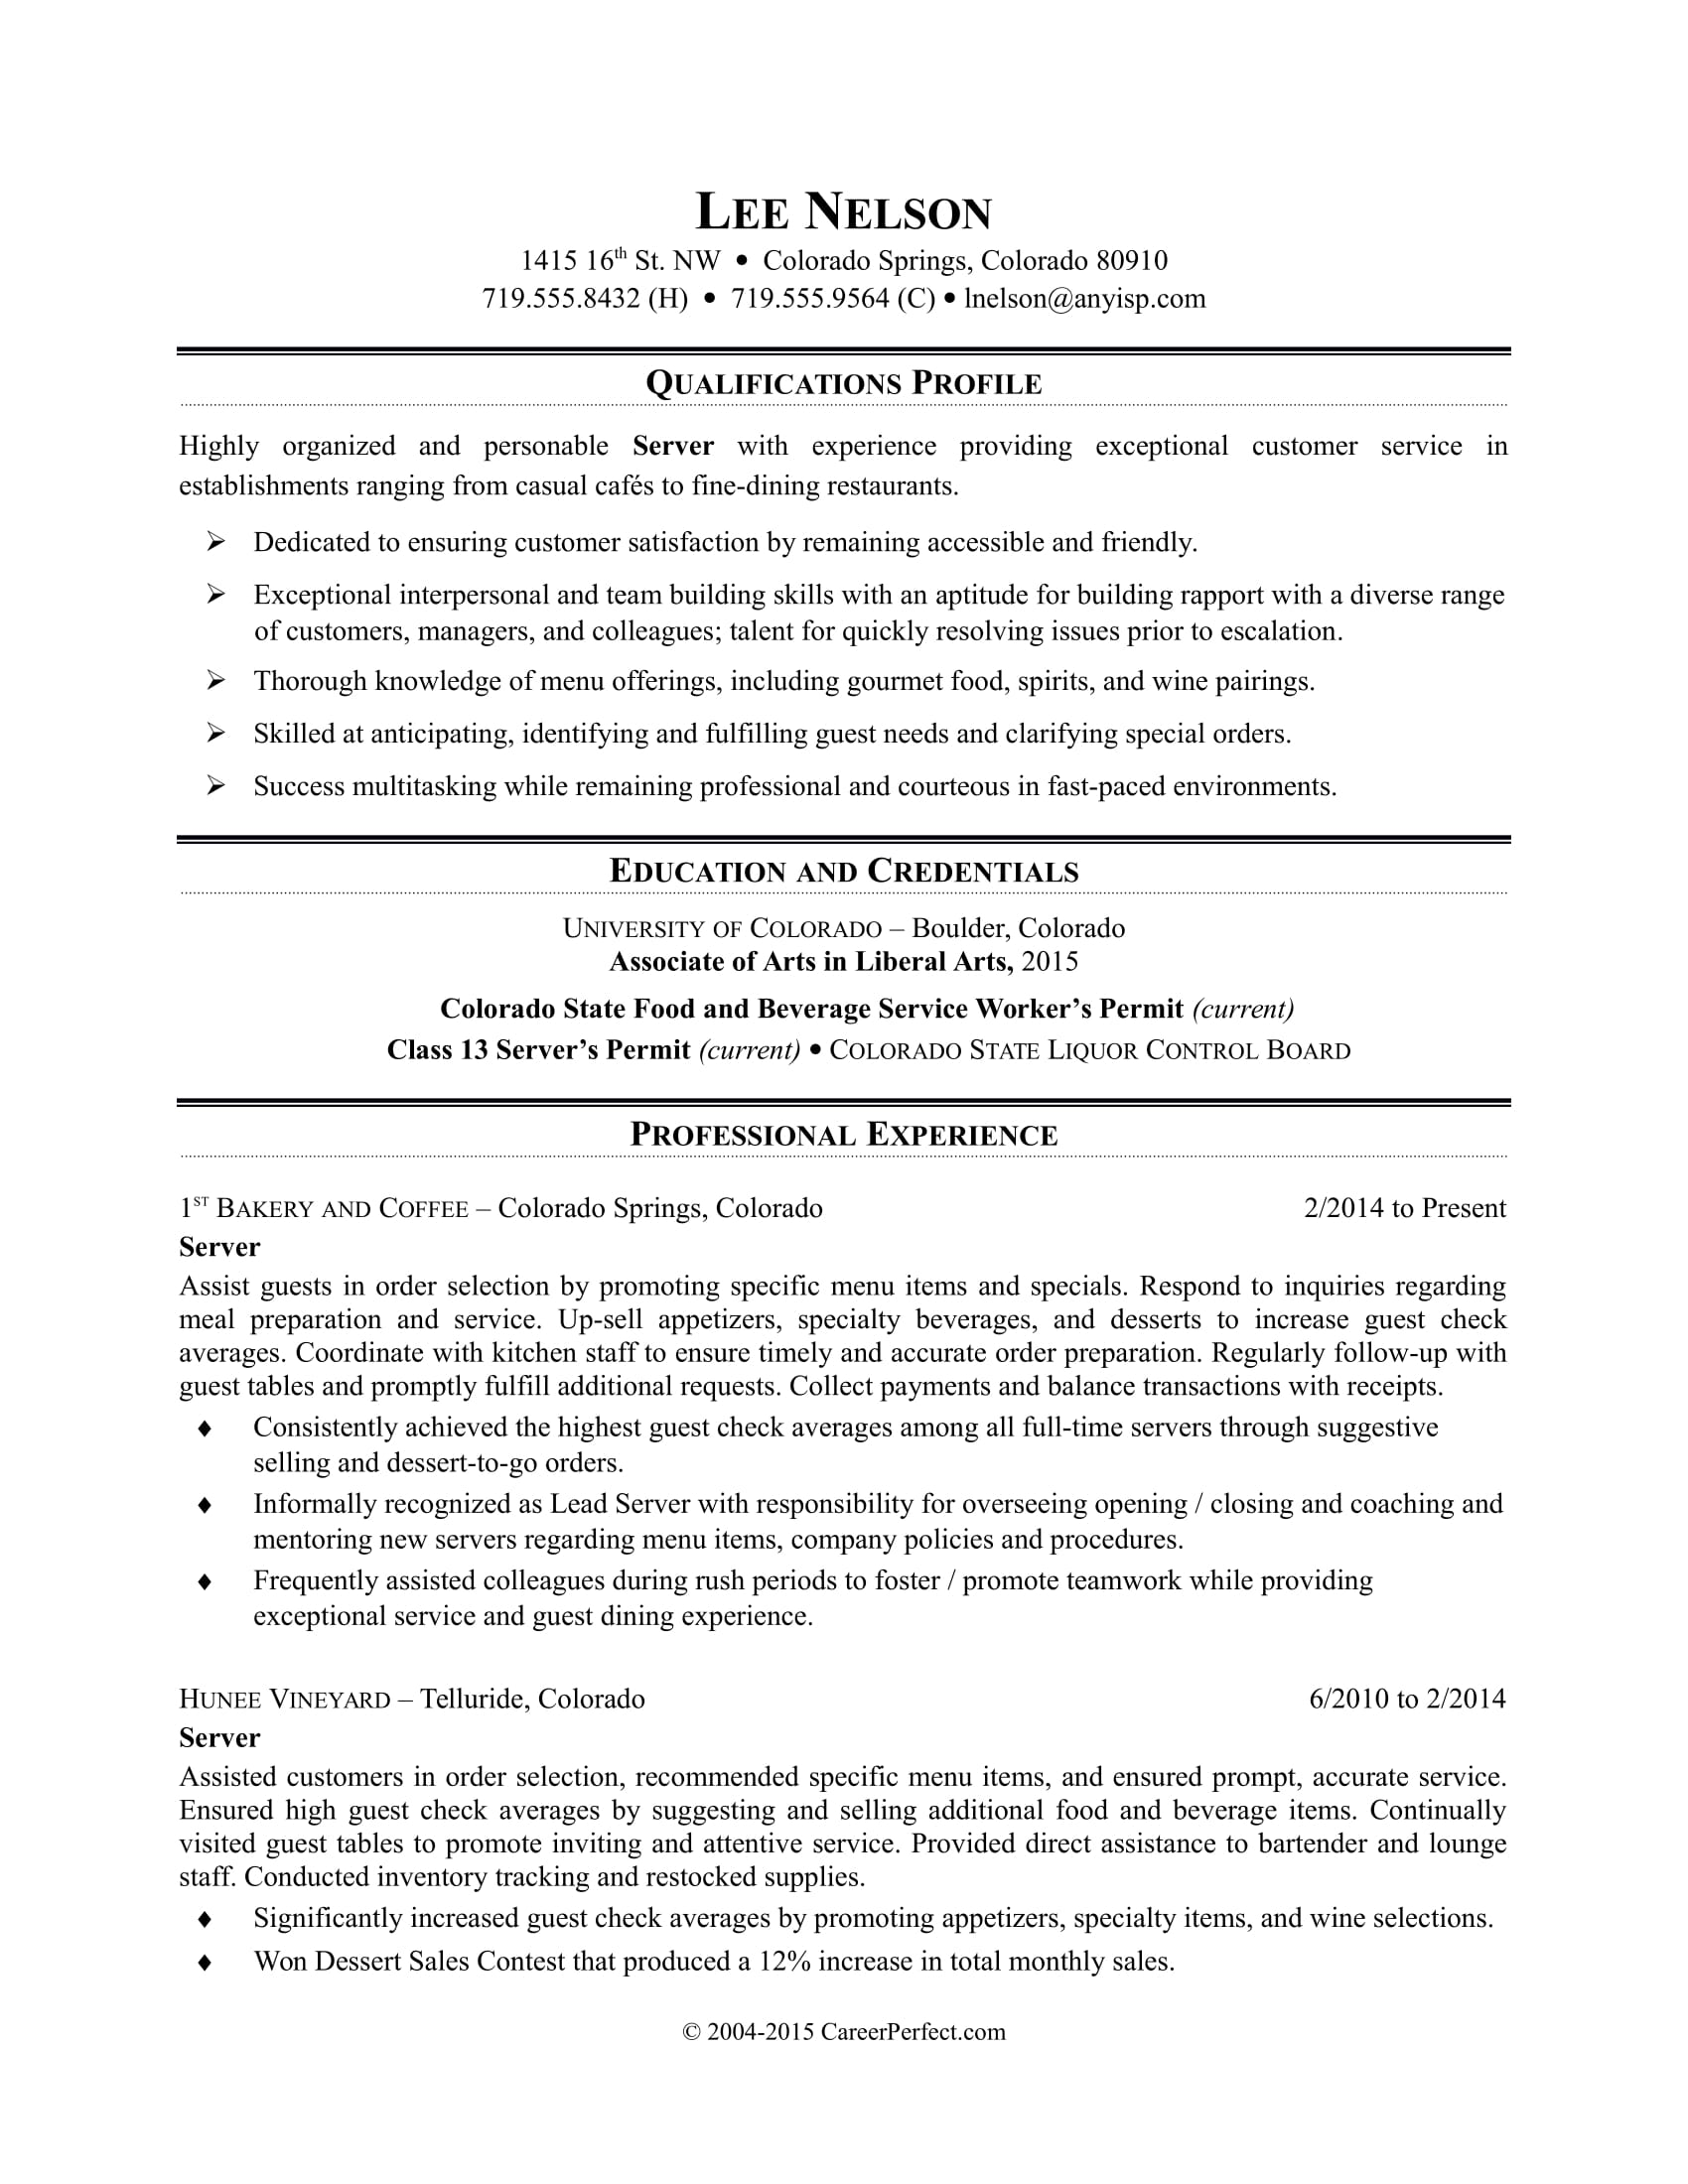 Marvelous Sample Resume For A Restaurant Server  Server Job Duties For Resume